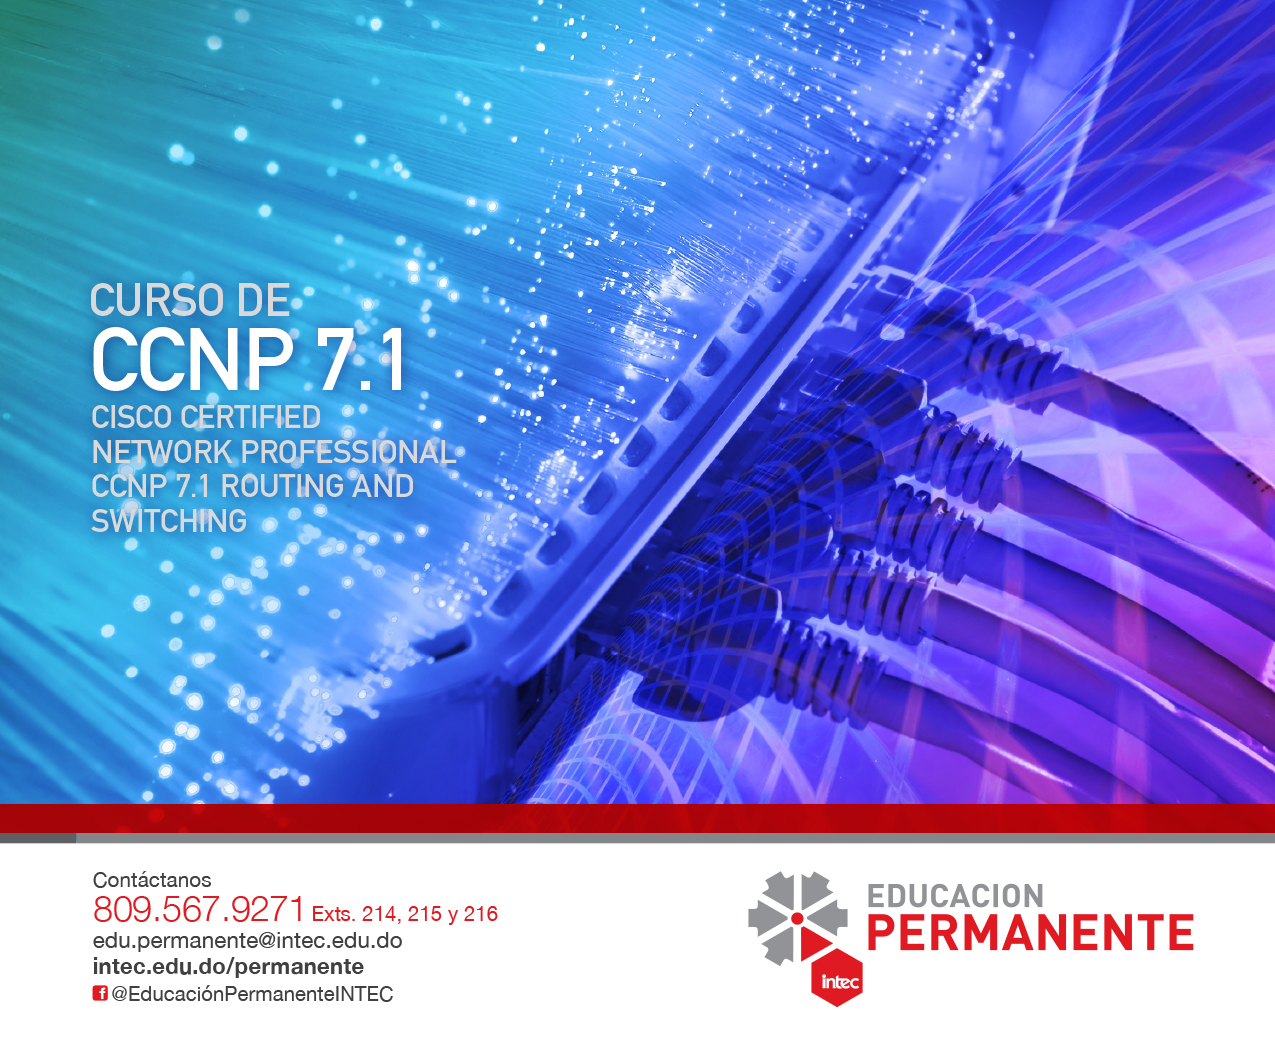 CISCO CERTIFIED NETWORK PROFESSIONAL (CCNP 7.1 MODULO 3)